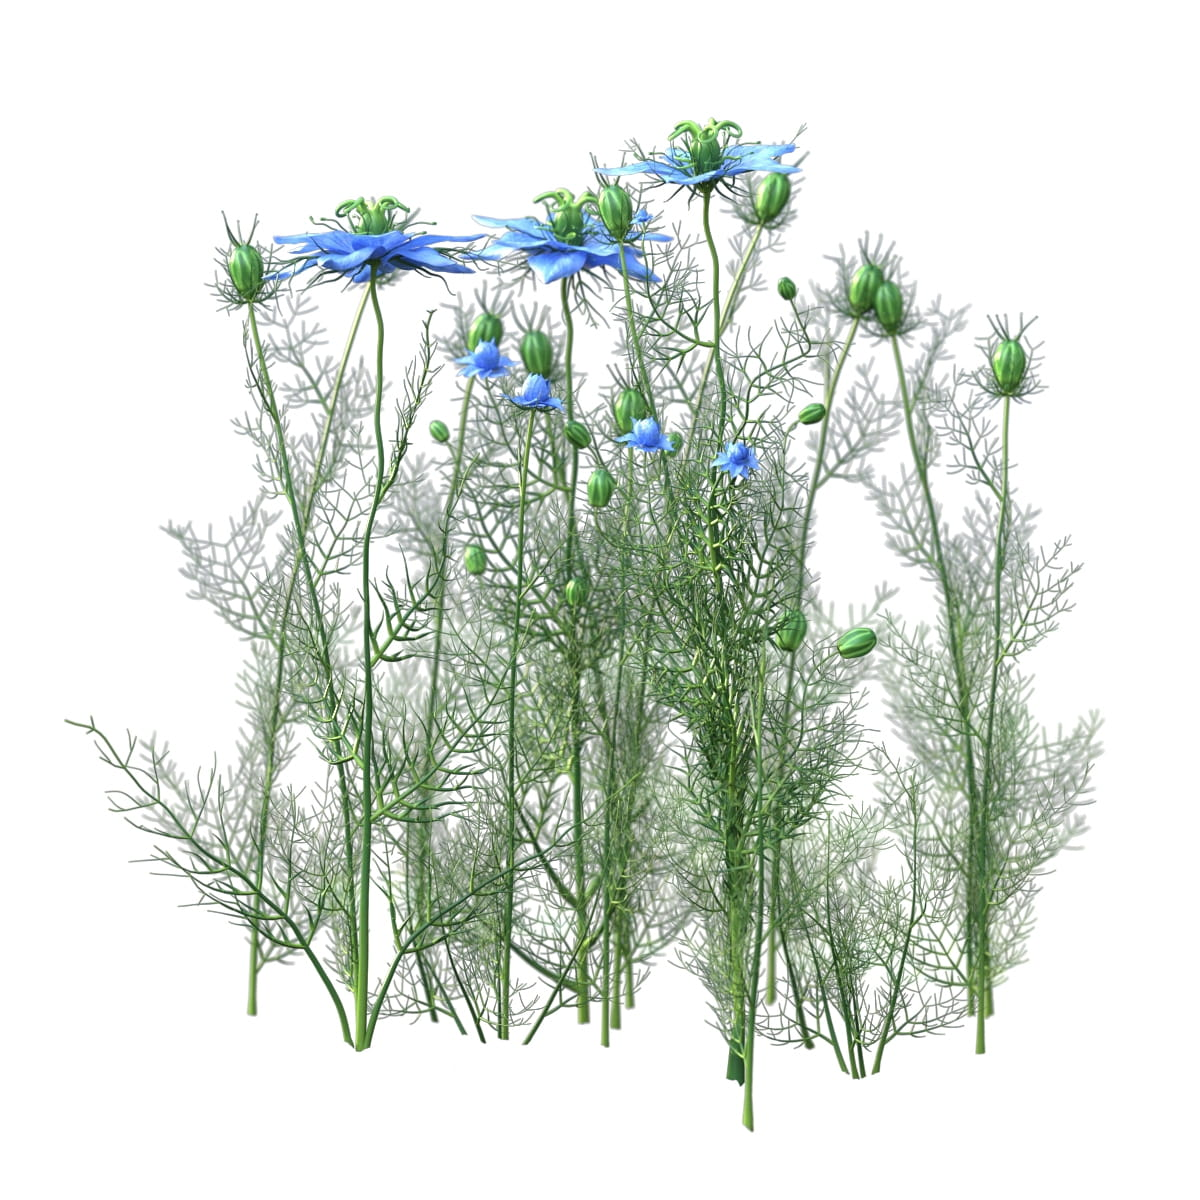 Nigella sativa 34 AM214 Archmodels